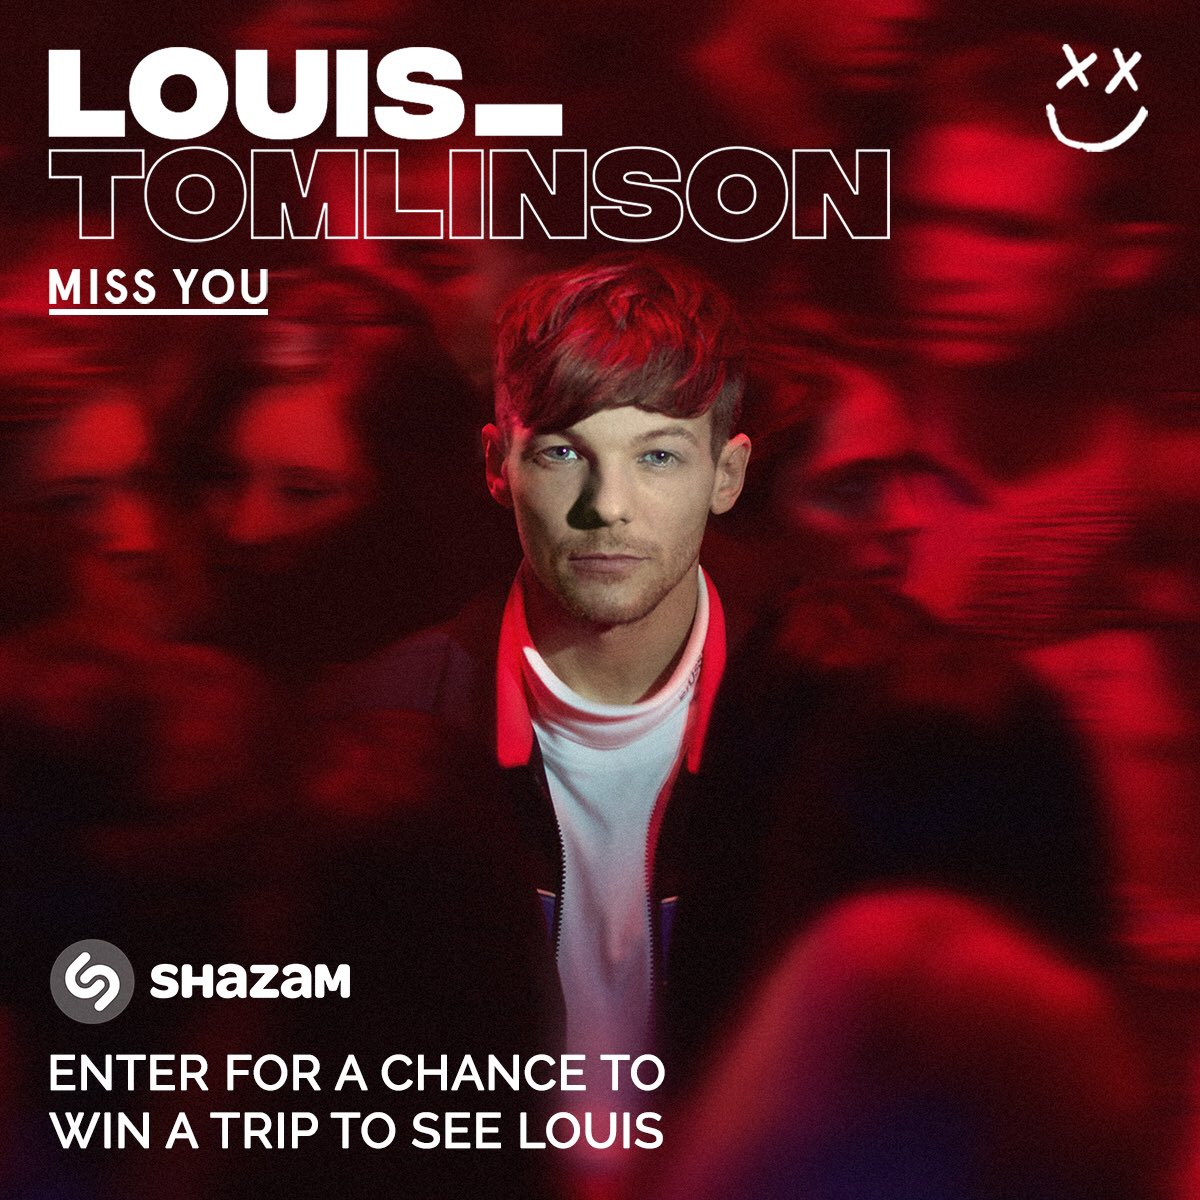 @Shazam @Louis_Tomlinson #MissYou and enter for a chance to win a trip to see Louis in the US!  #MissYouFlyAway https://t.co/869WOfhqkp